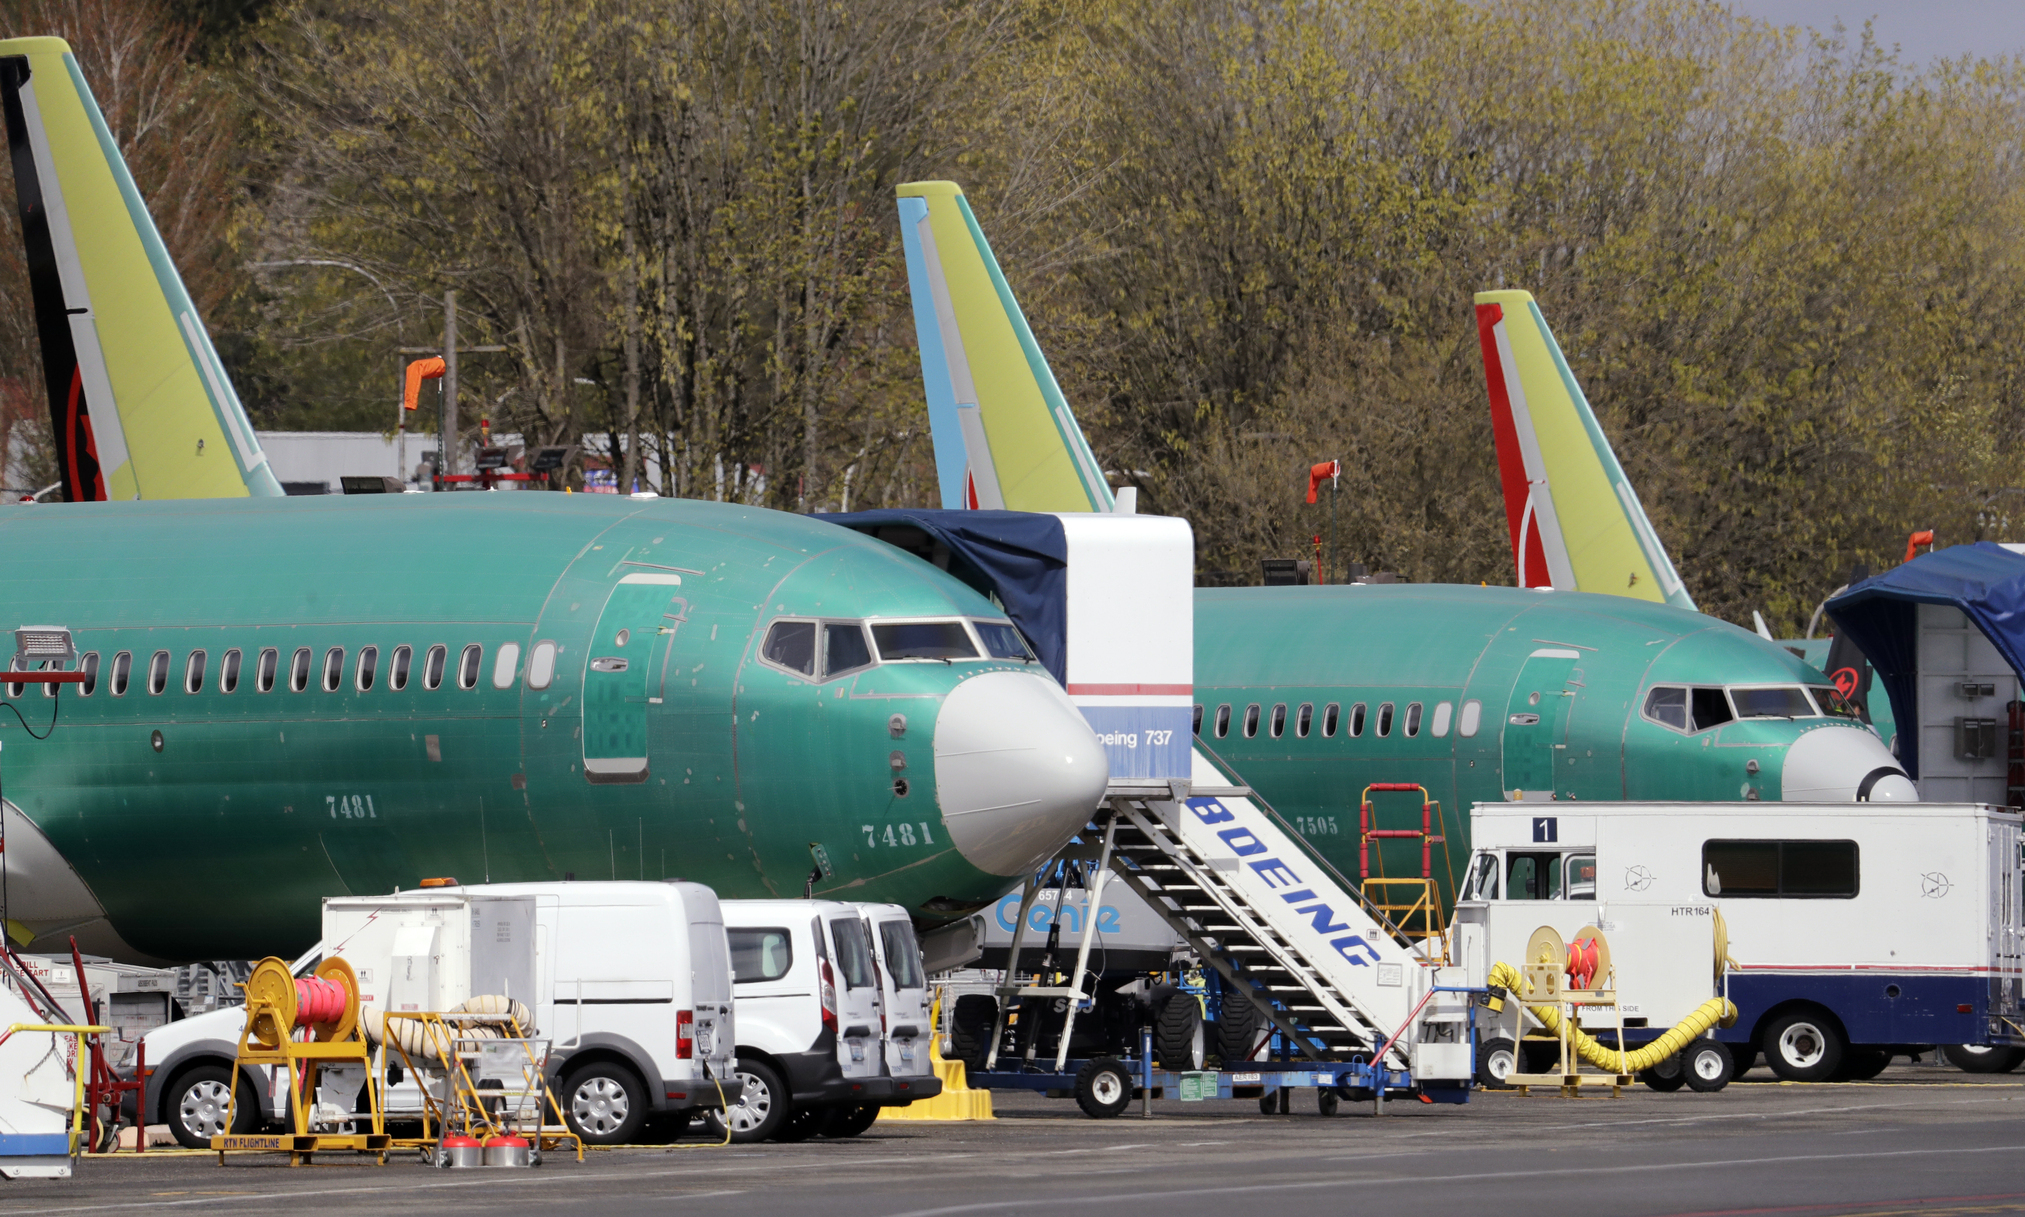 Boeing_Grounded_Planes_44018-159532.jpg47379602